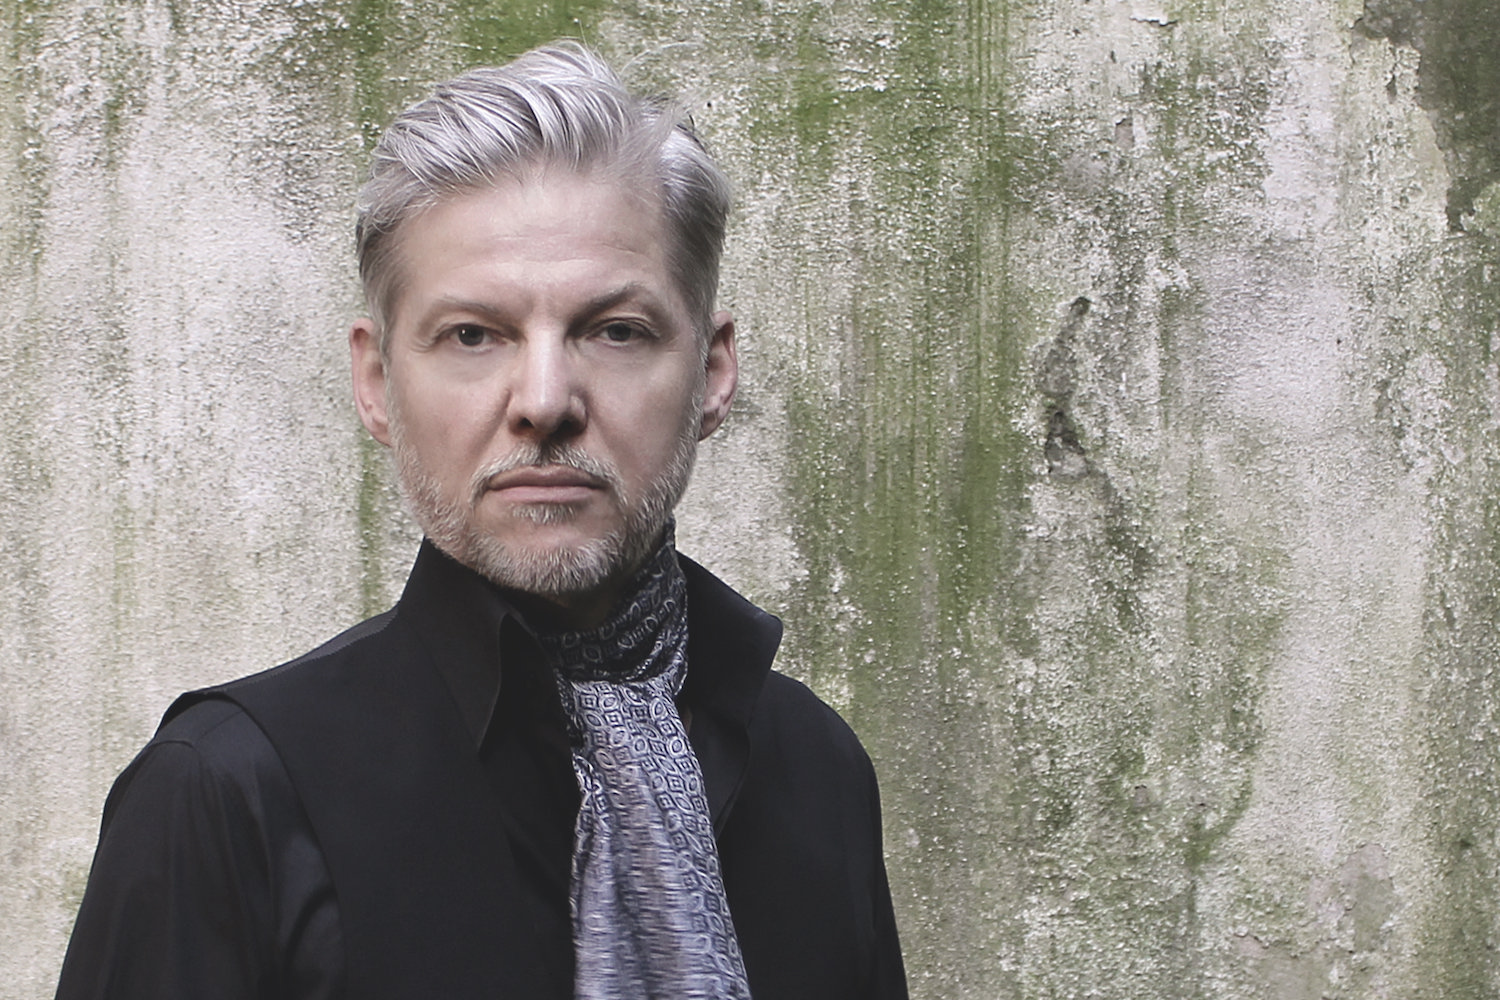 Wolfgang Voigt / GAS